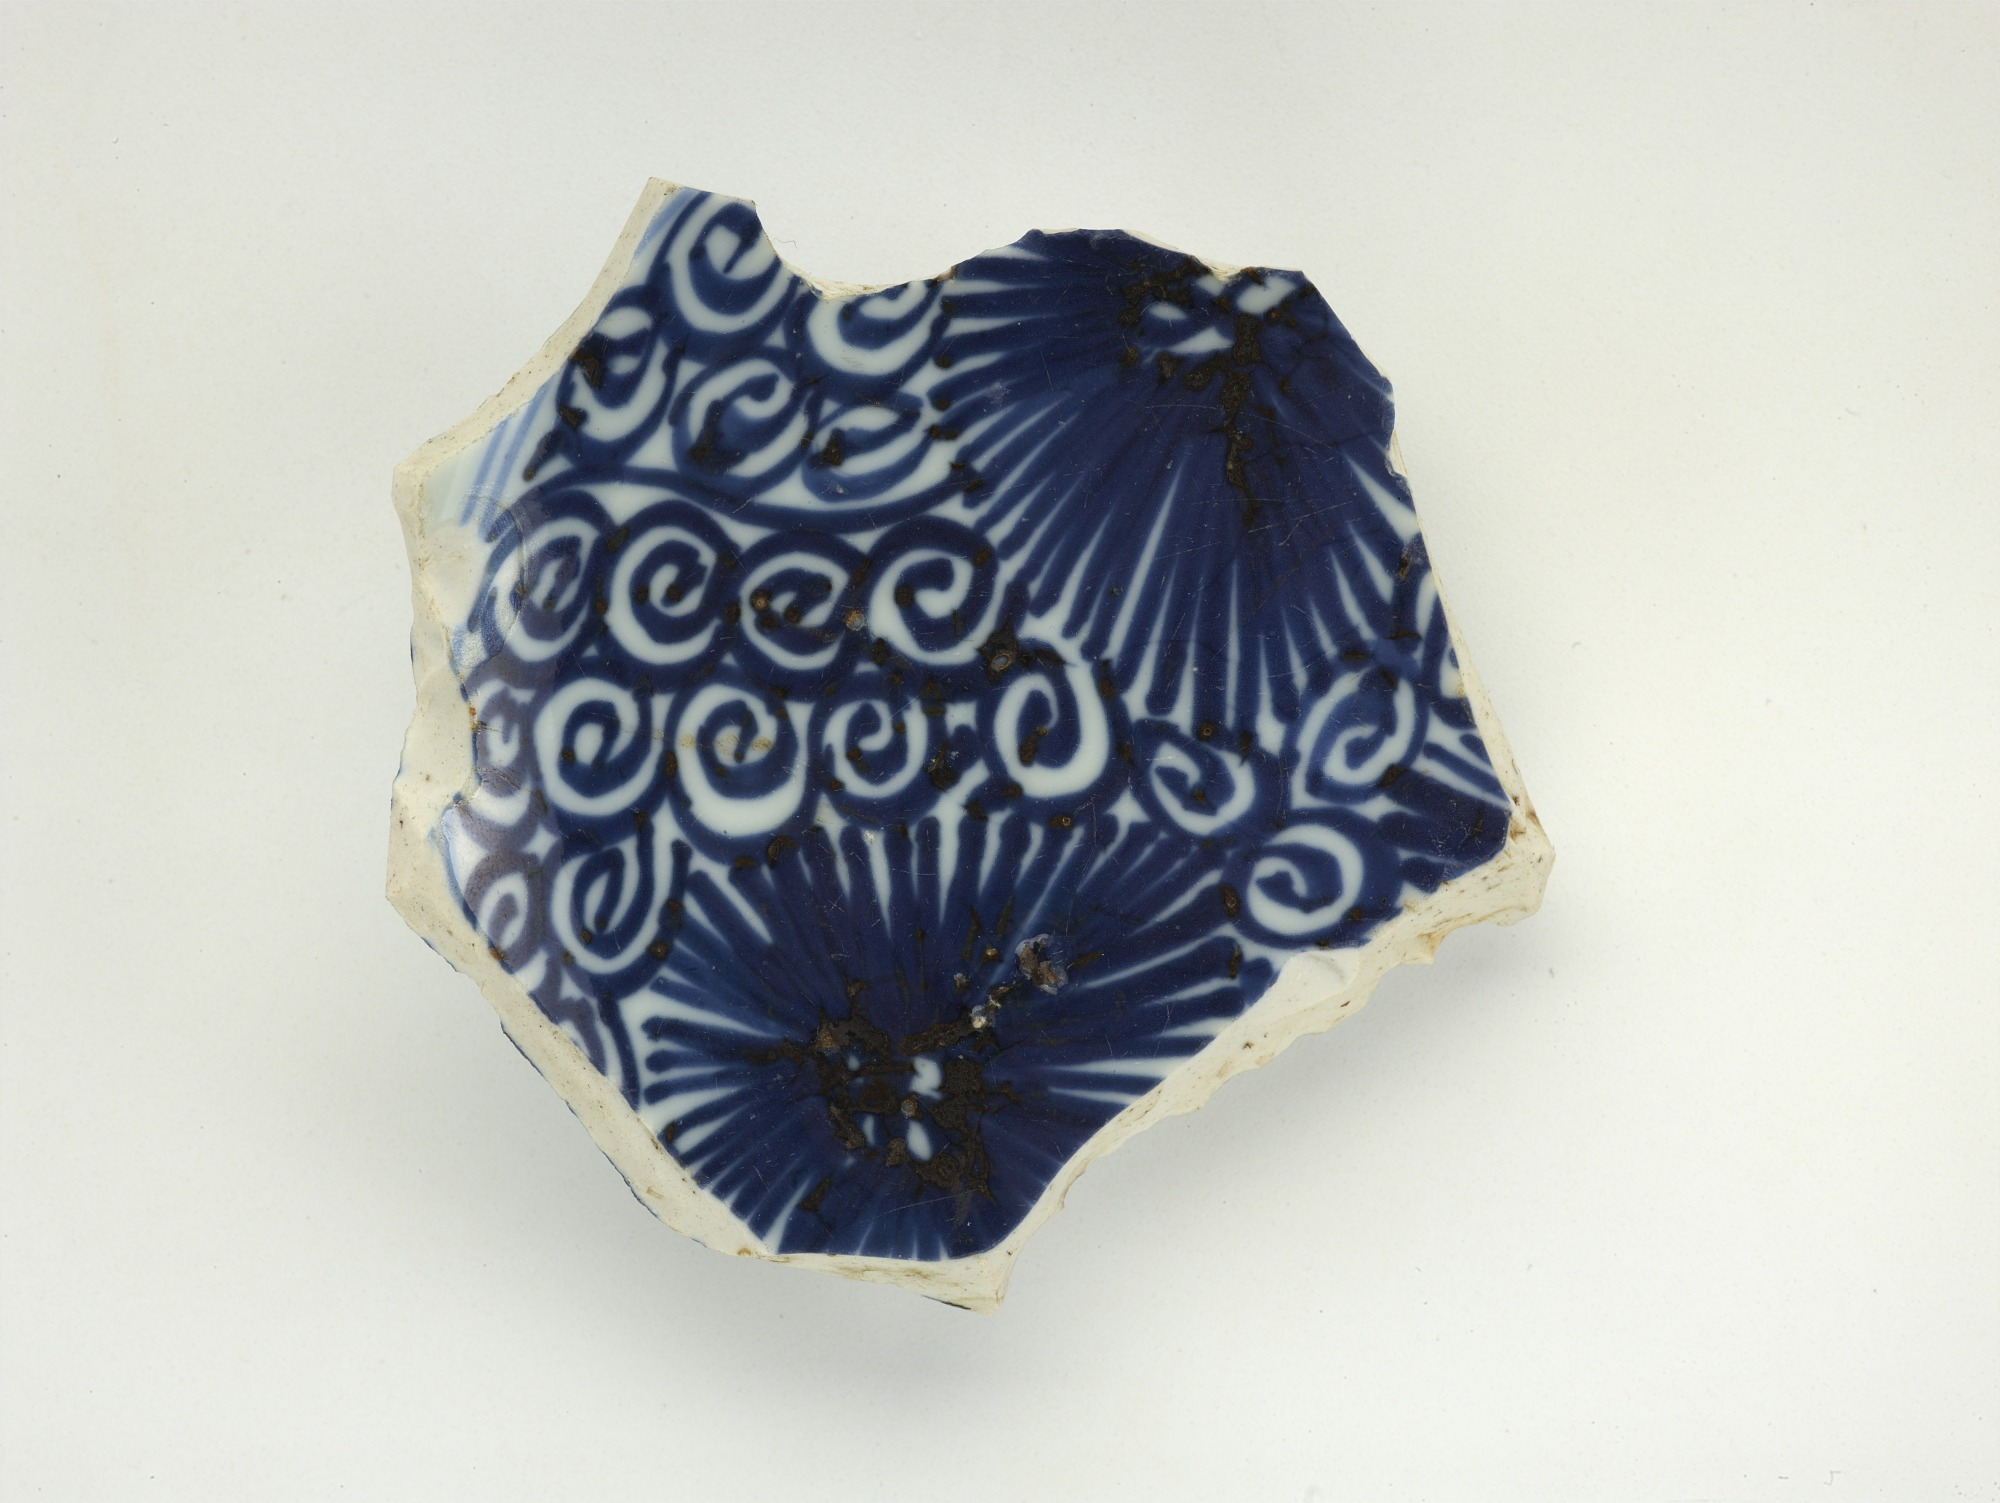 Pottery: unidentified form